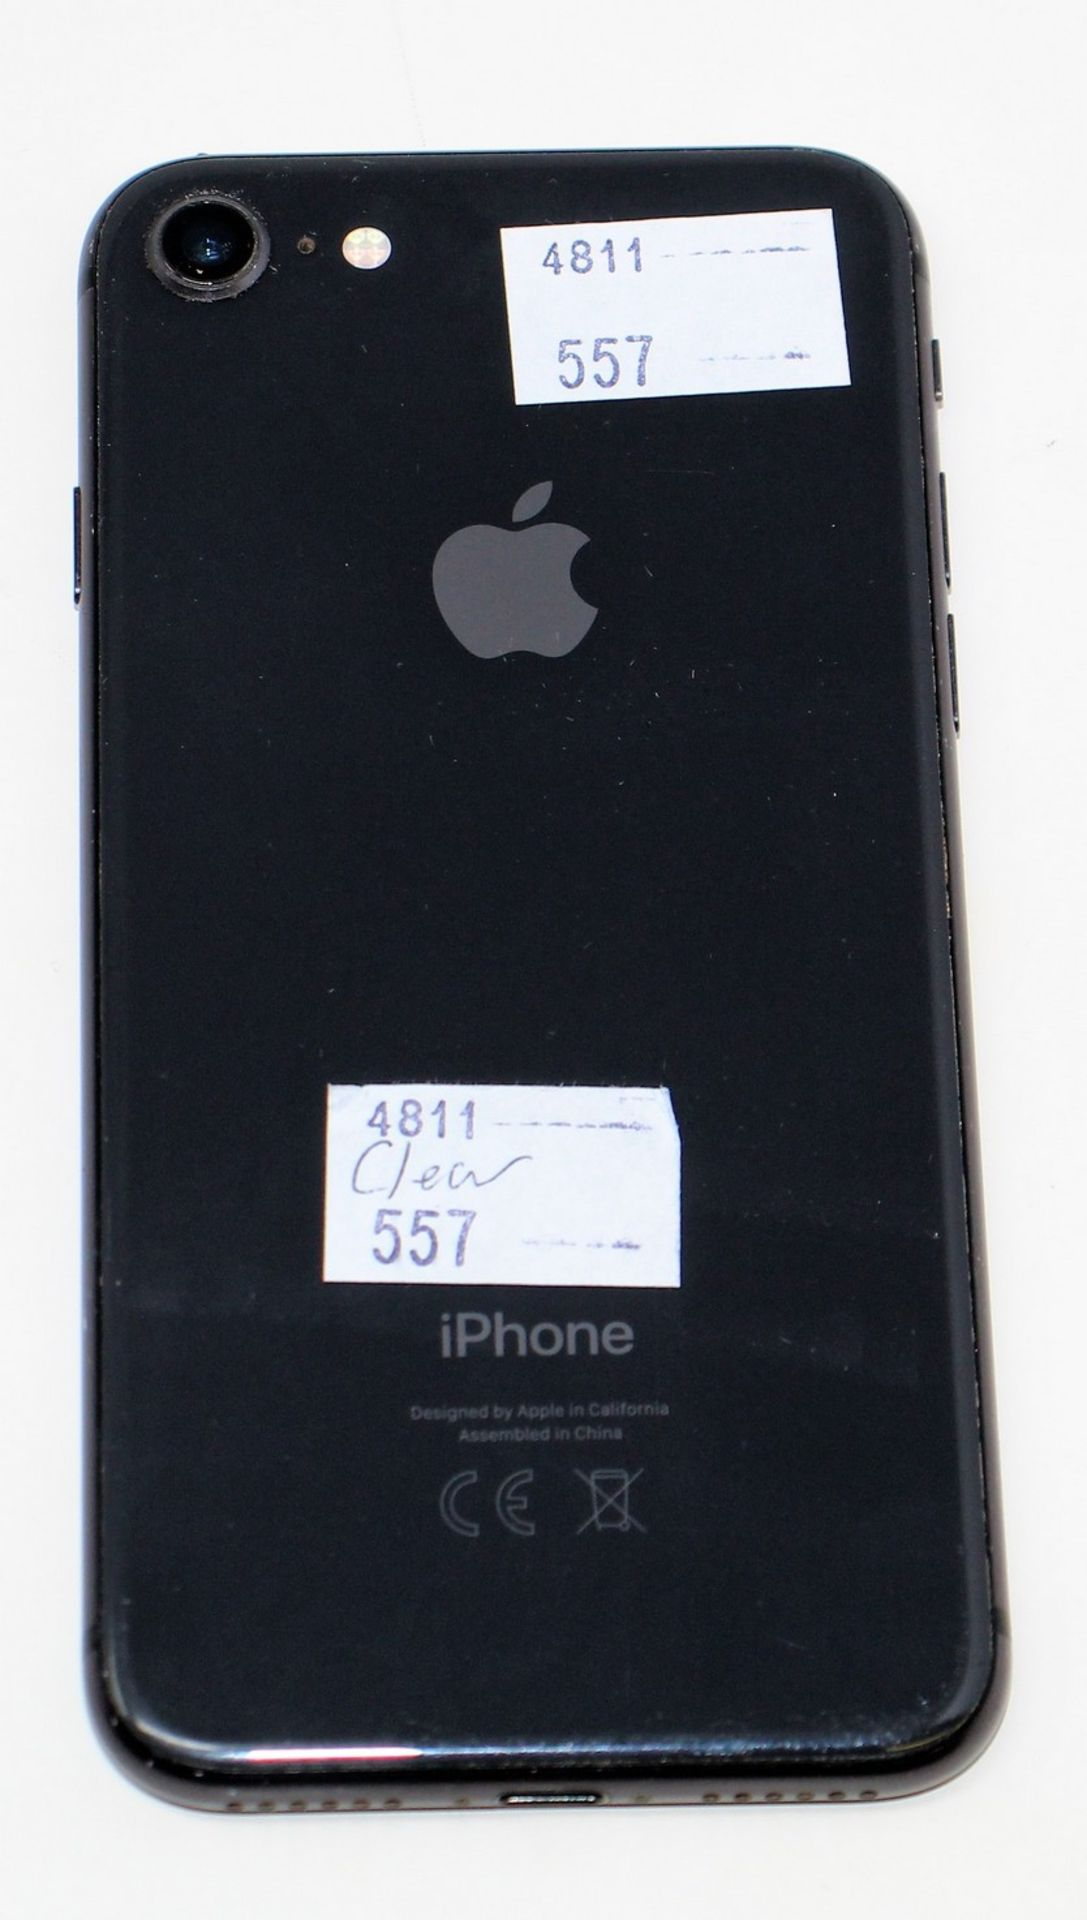 A pre-owned Apple iPhone 8 (AT&T/T-Mobile/Global/A1905) 64GB in Space Grey (iCloud activation clear, - Image 7 of 8